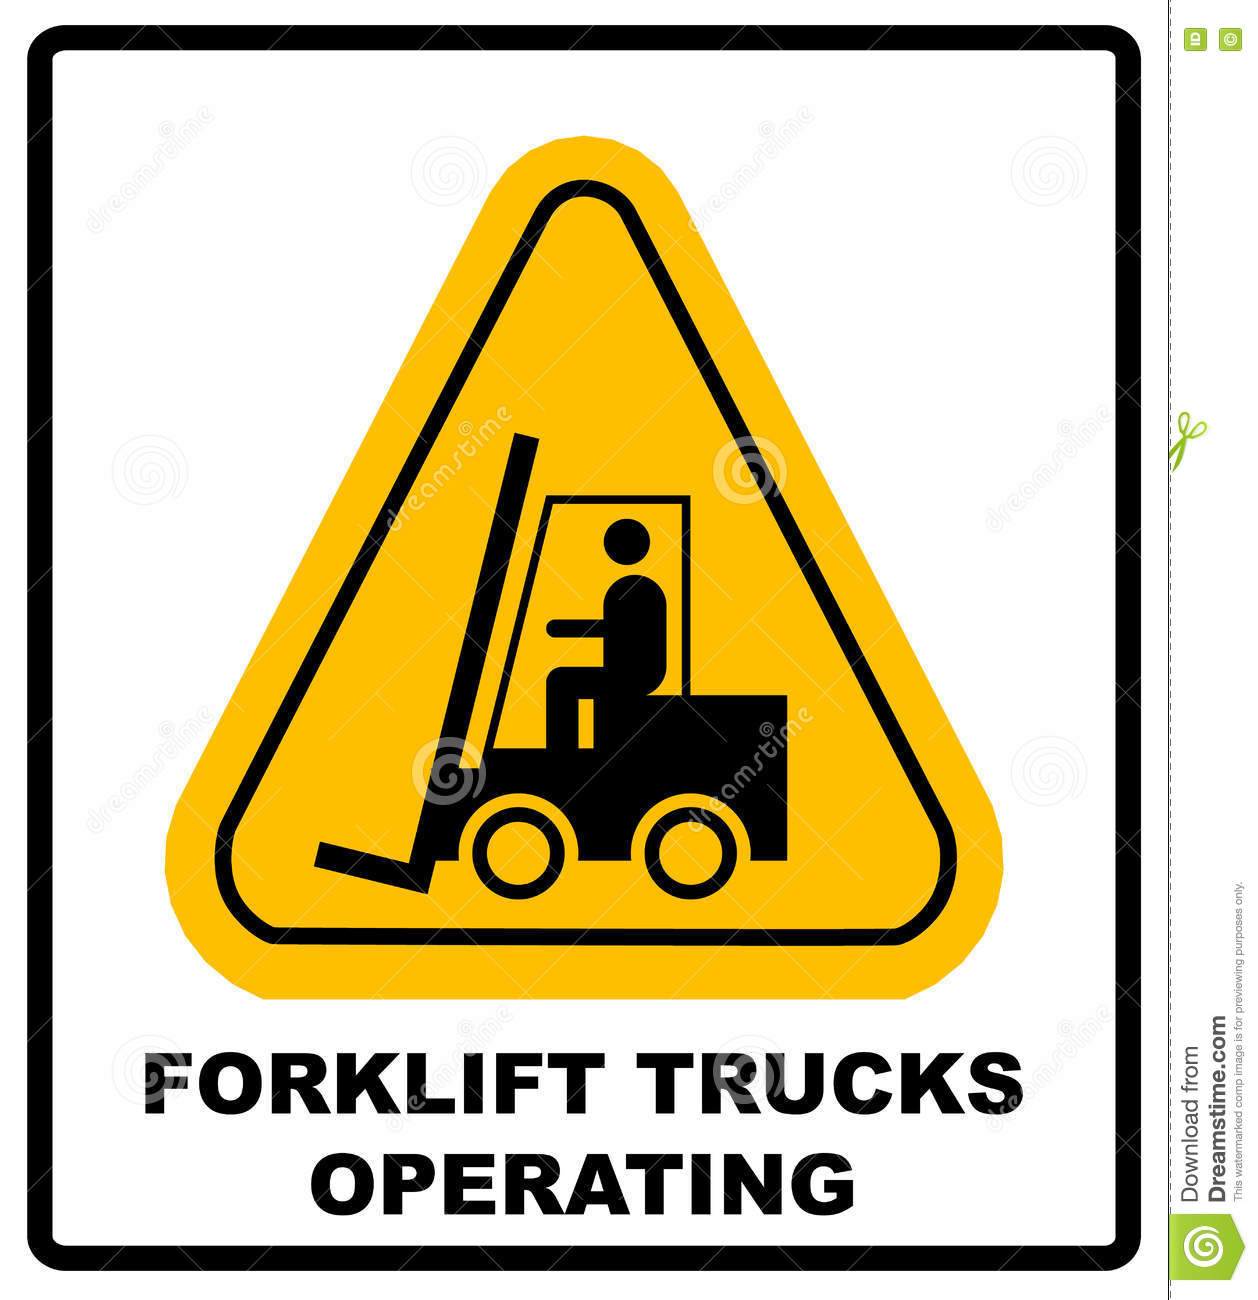 lift truck safety symbols pictures to pin on pinterest. Black Bedroom Furniture Sets. Home Design Ideas